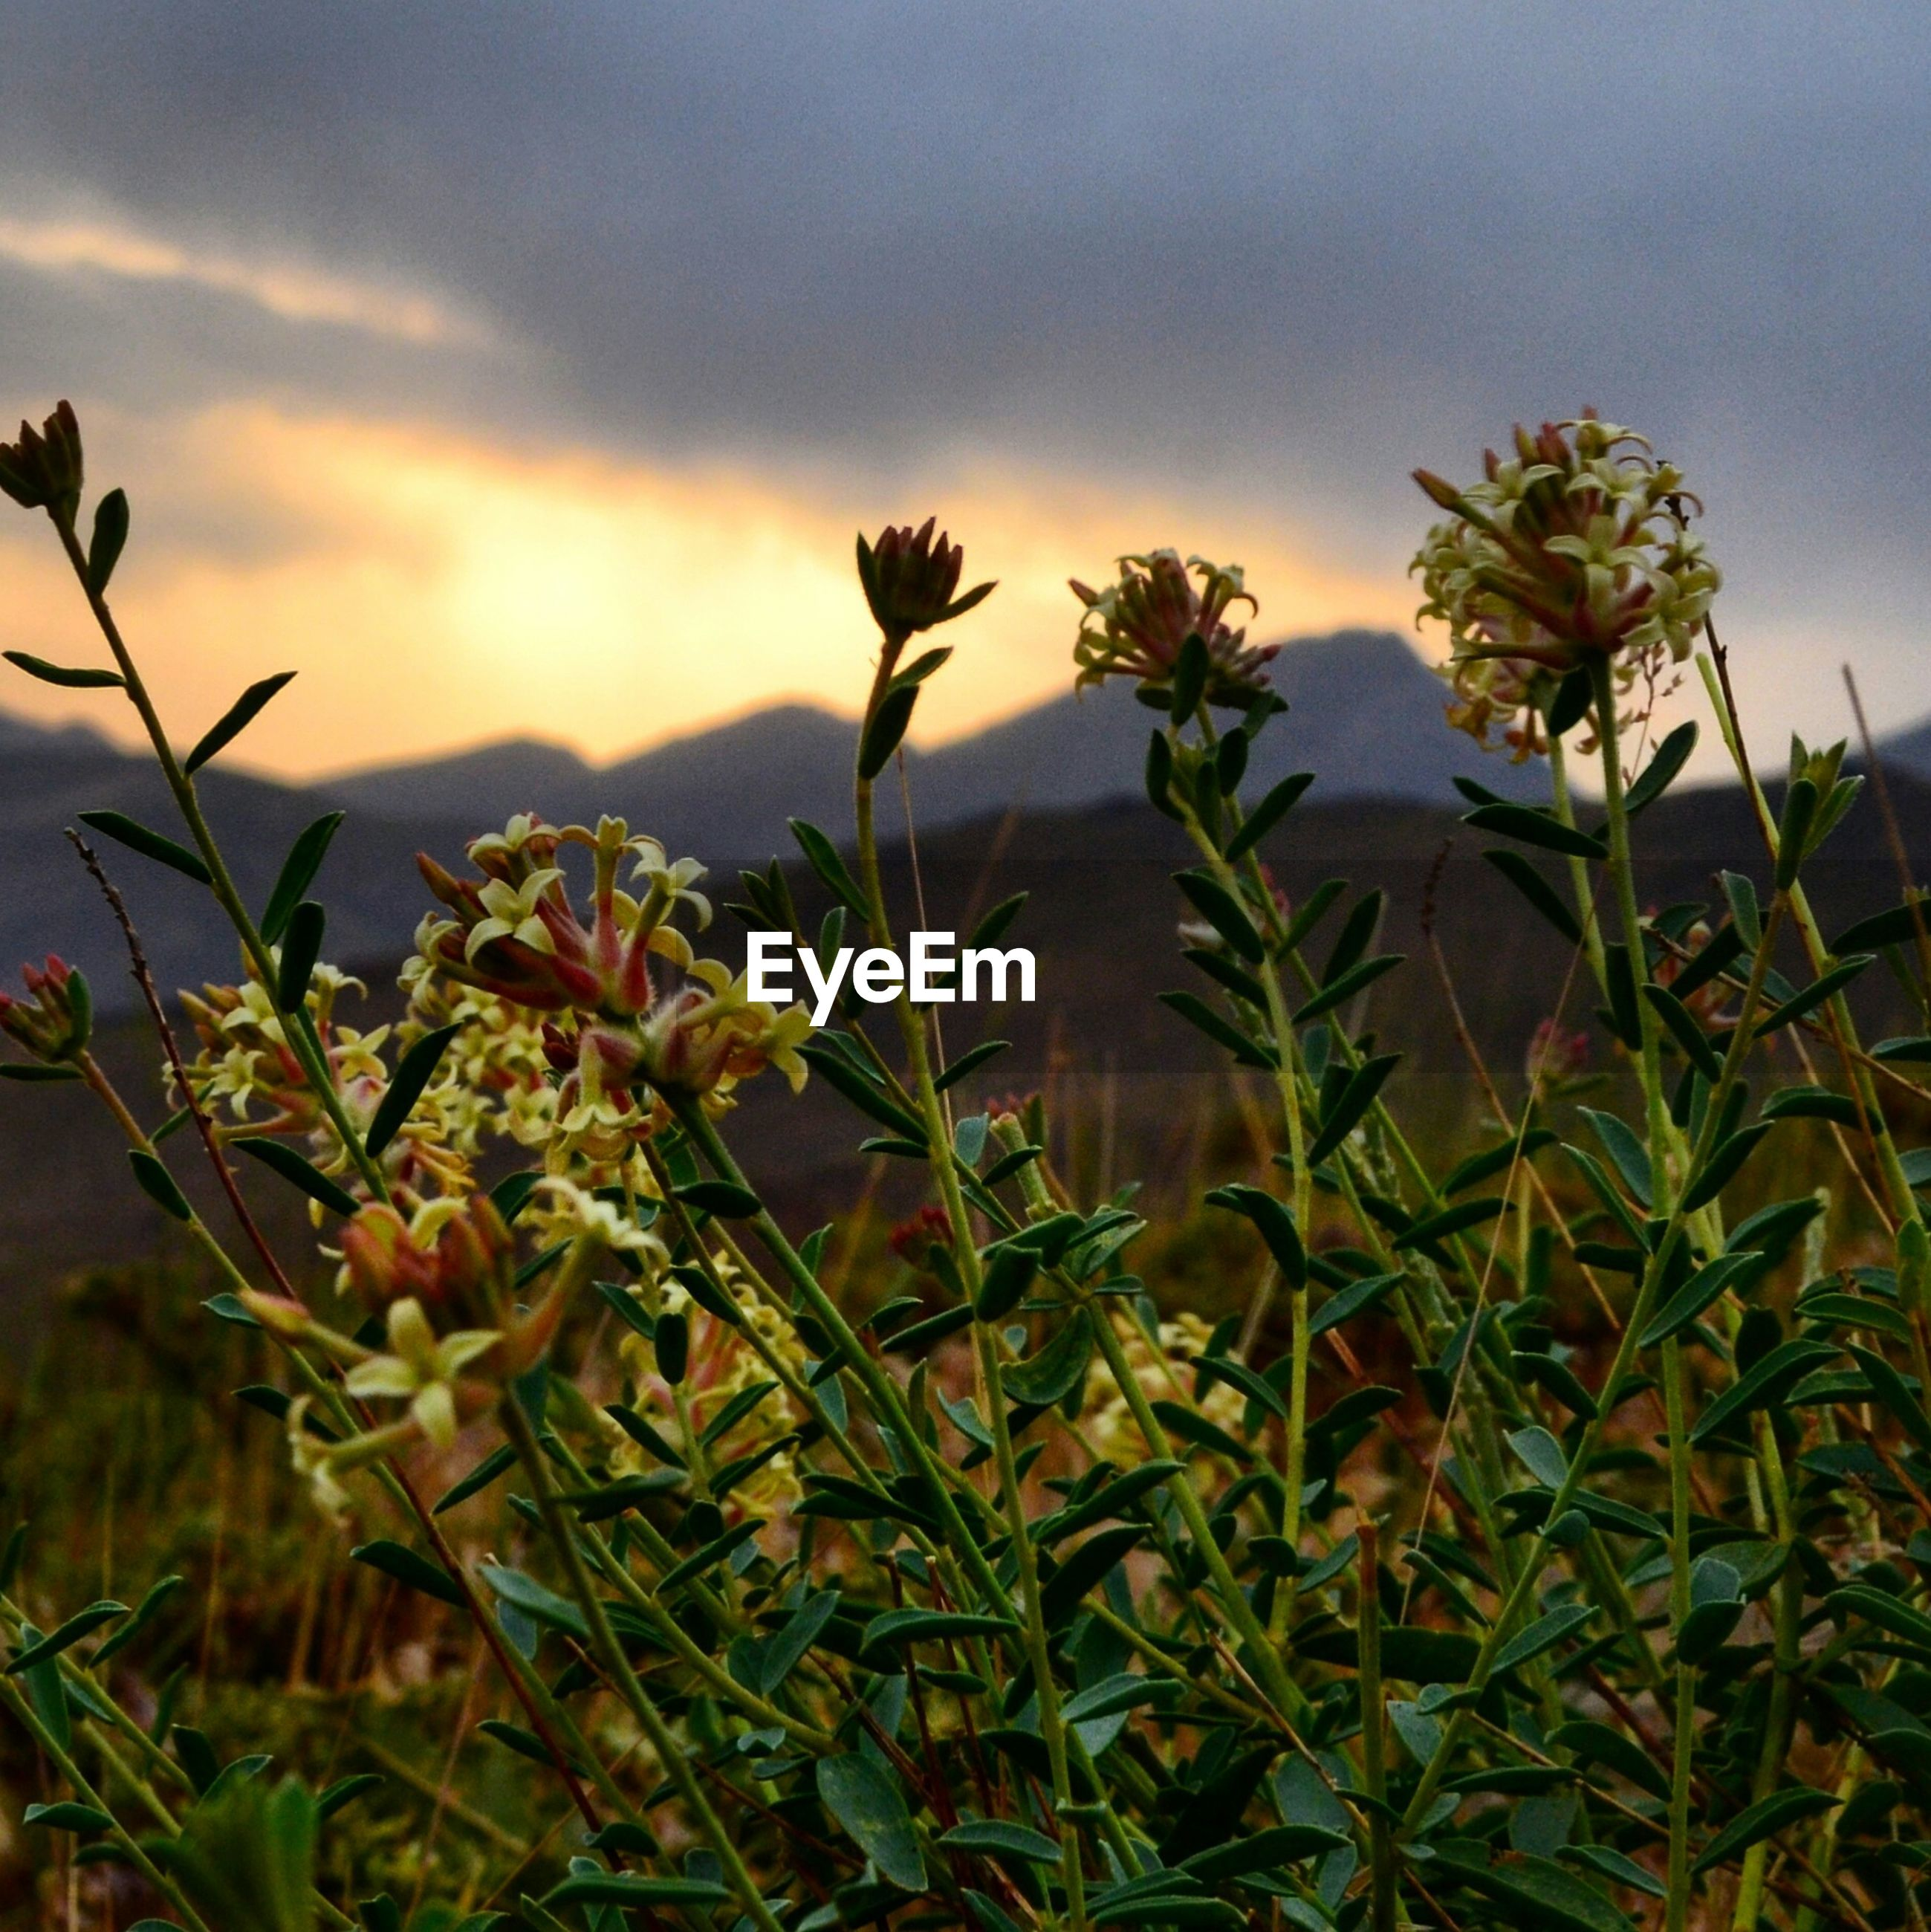 sky, growth, plant, beauty in nature, cloud - sky, nature, flower, leaf, freshness, cloudy, cloud, tranquility, sunset, low angle view, field, stem, tranquil scene, fragility, scenics, green color